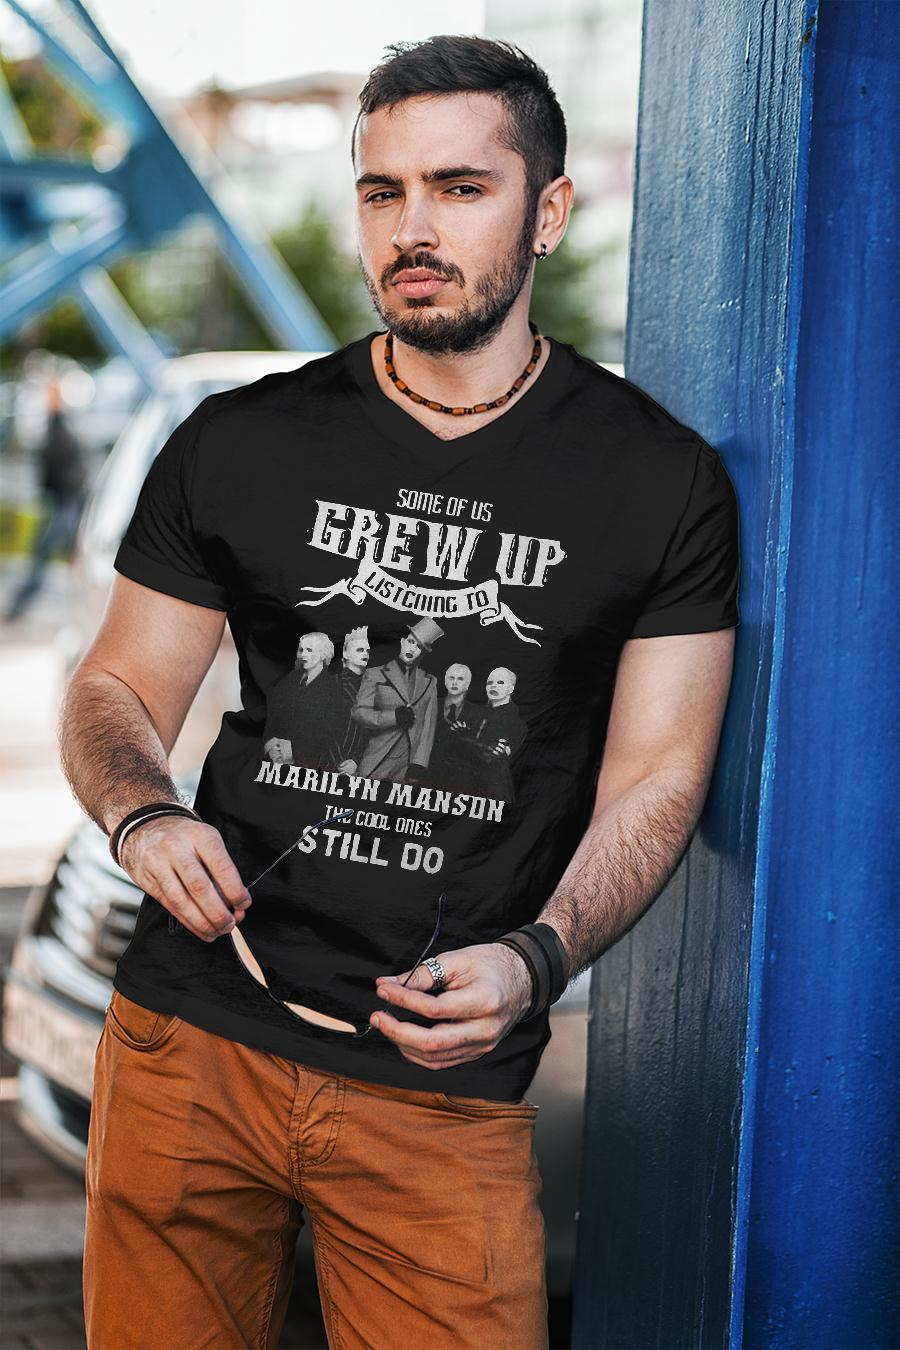 Some of us grew up listening to Marilyn Manson the cool ones still do Shirt unisex